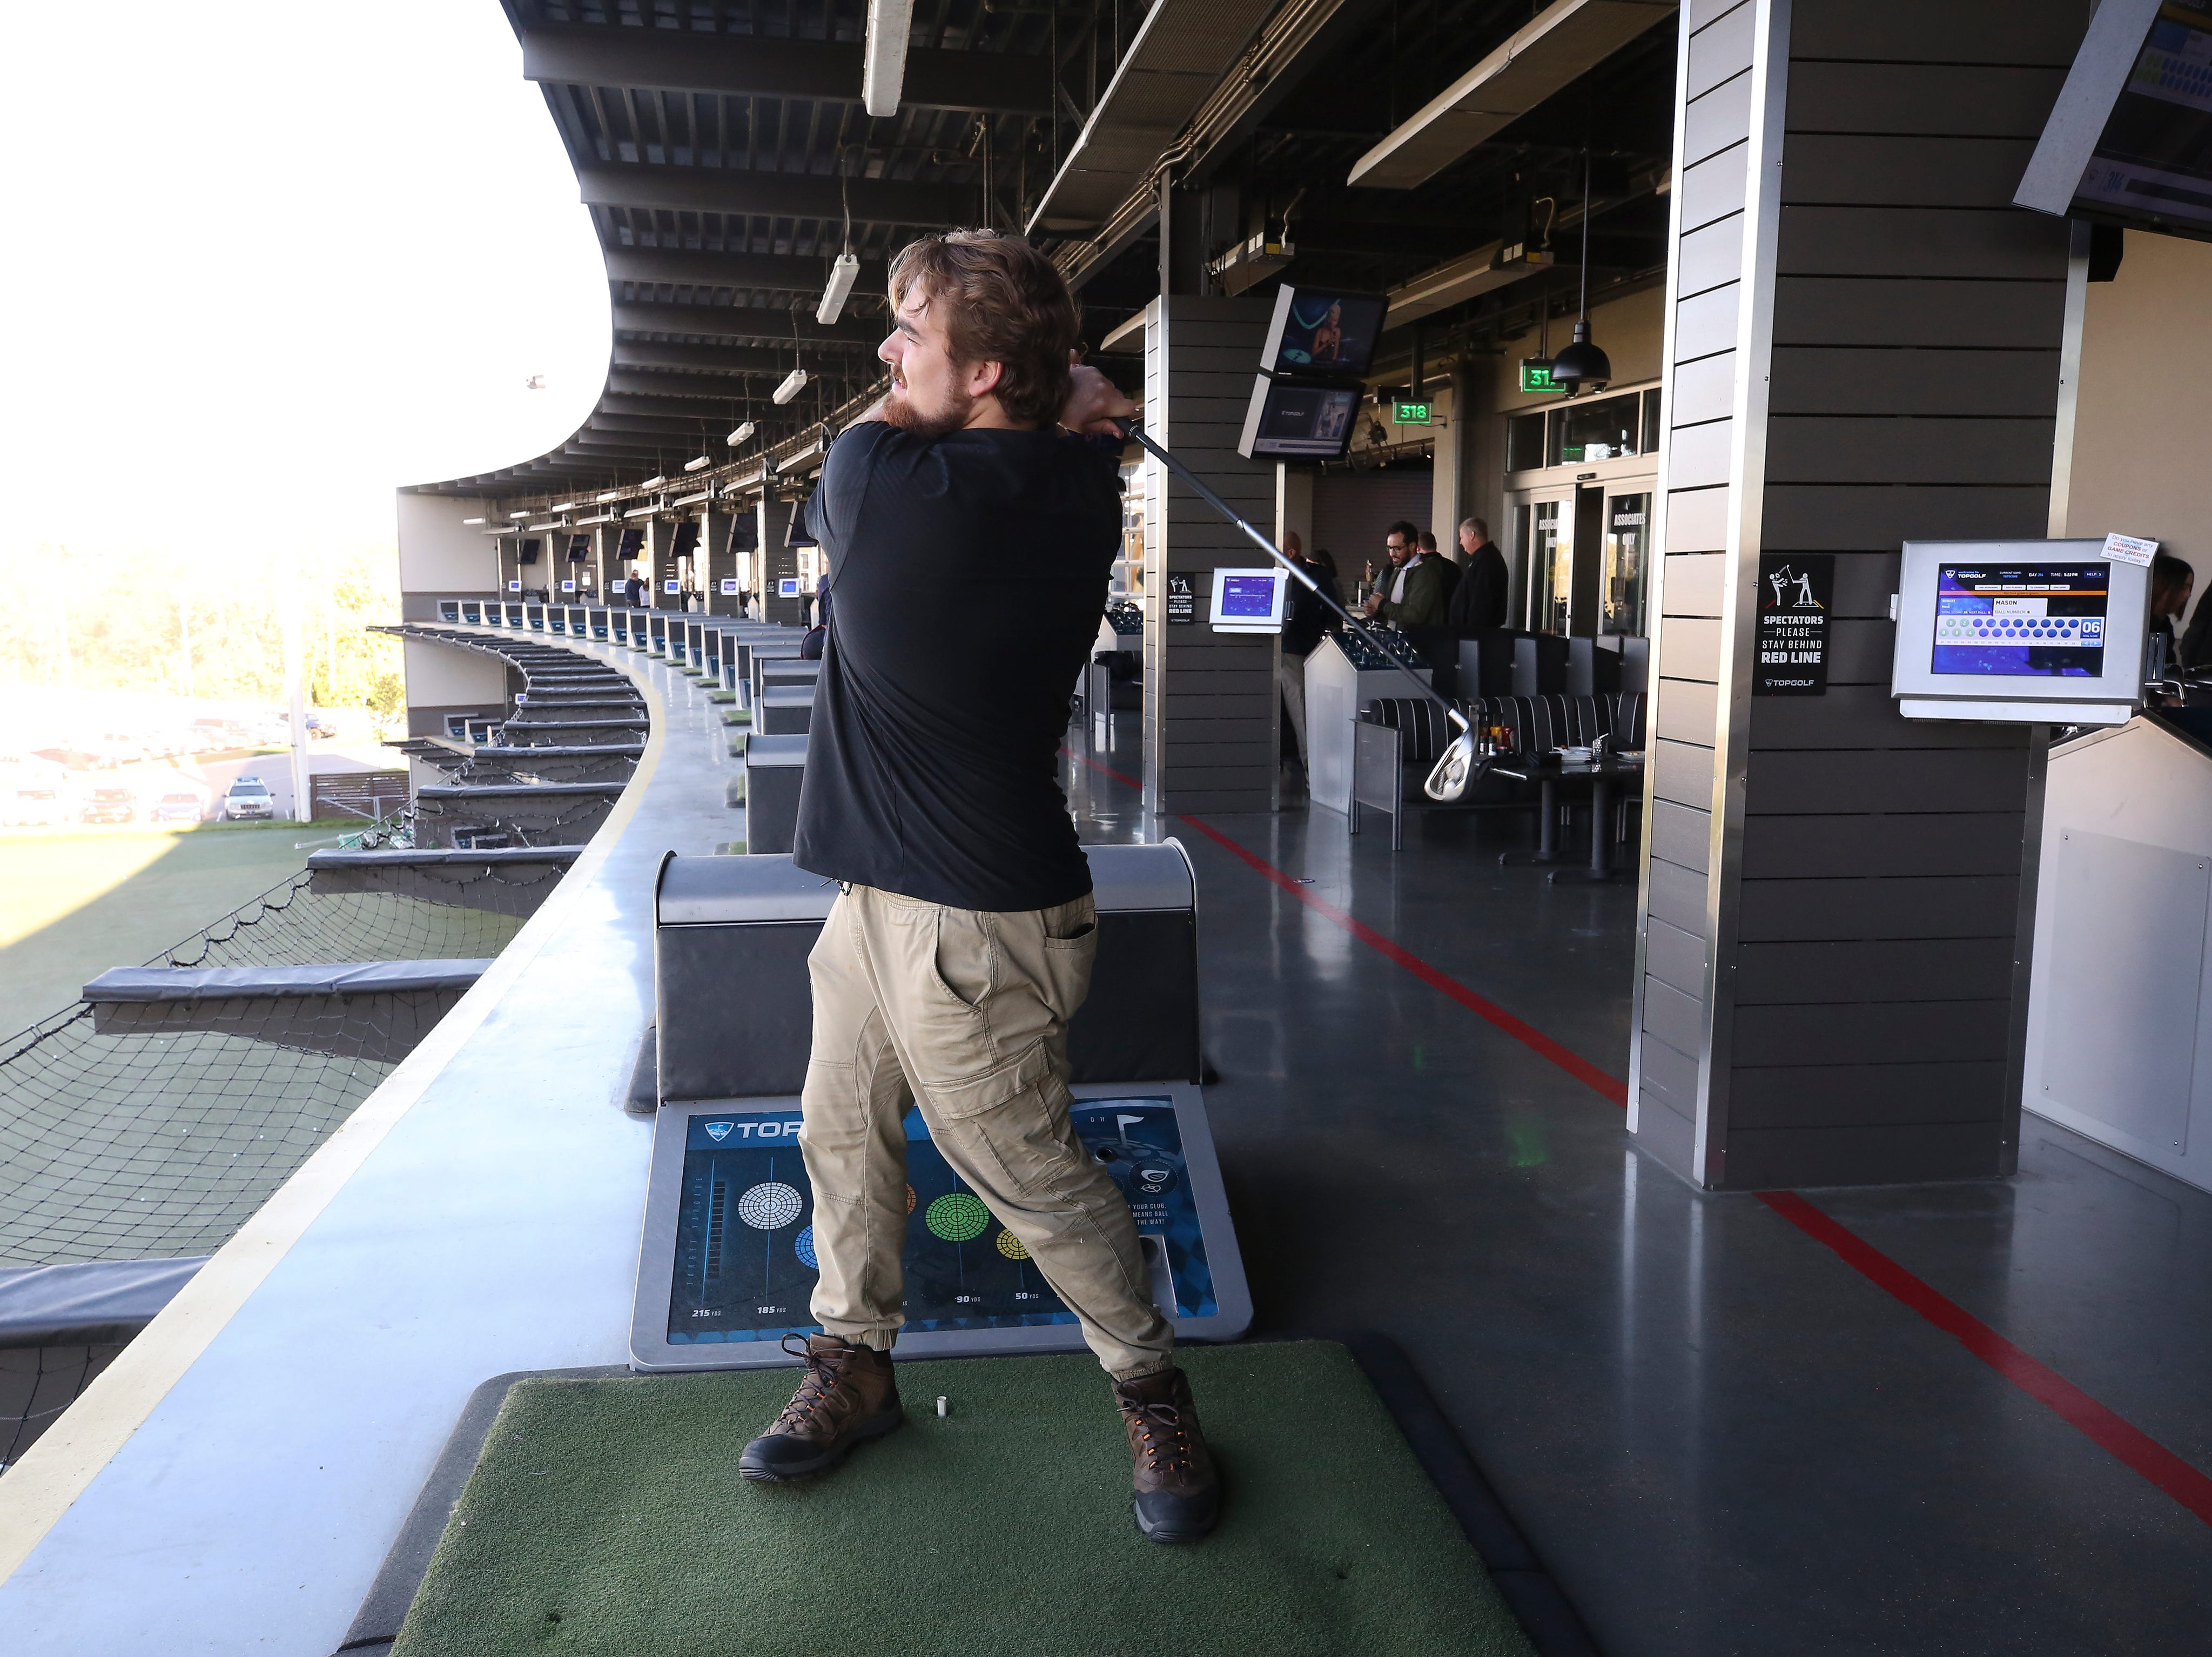 Mason Nowels watched his ball fly at the Topgolf outside of Cincinnati, Ohio.  Topgolf is proposing to build a facility at the Oxmoor Center in Louisville as they wait for a decision by the Metro planning commission. 